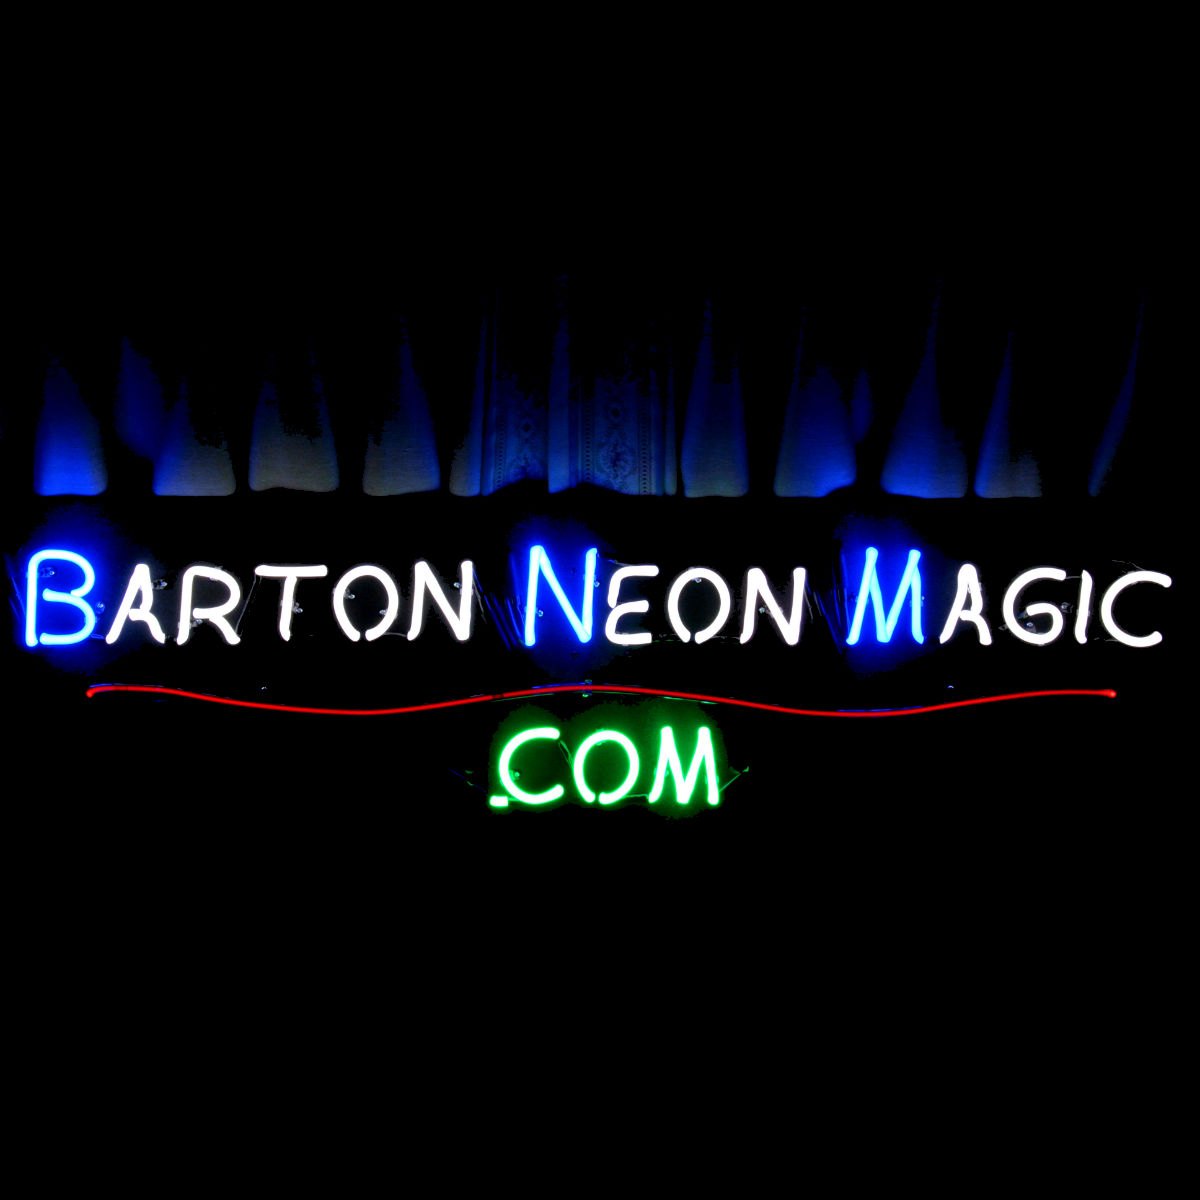 Custom Neon Light Fixtures by John Barton - BartonNeonMagic.com